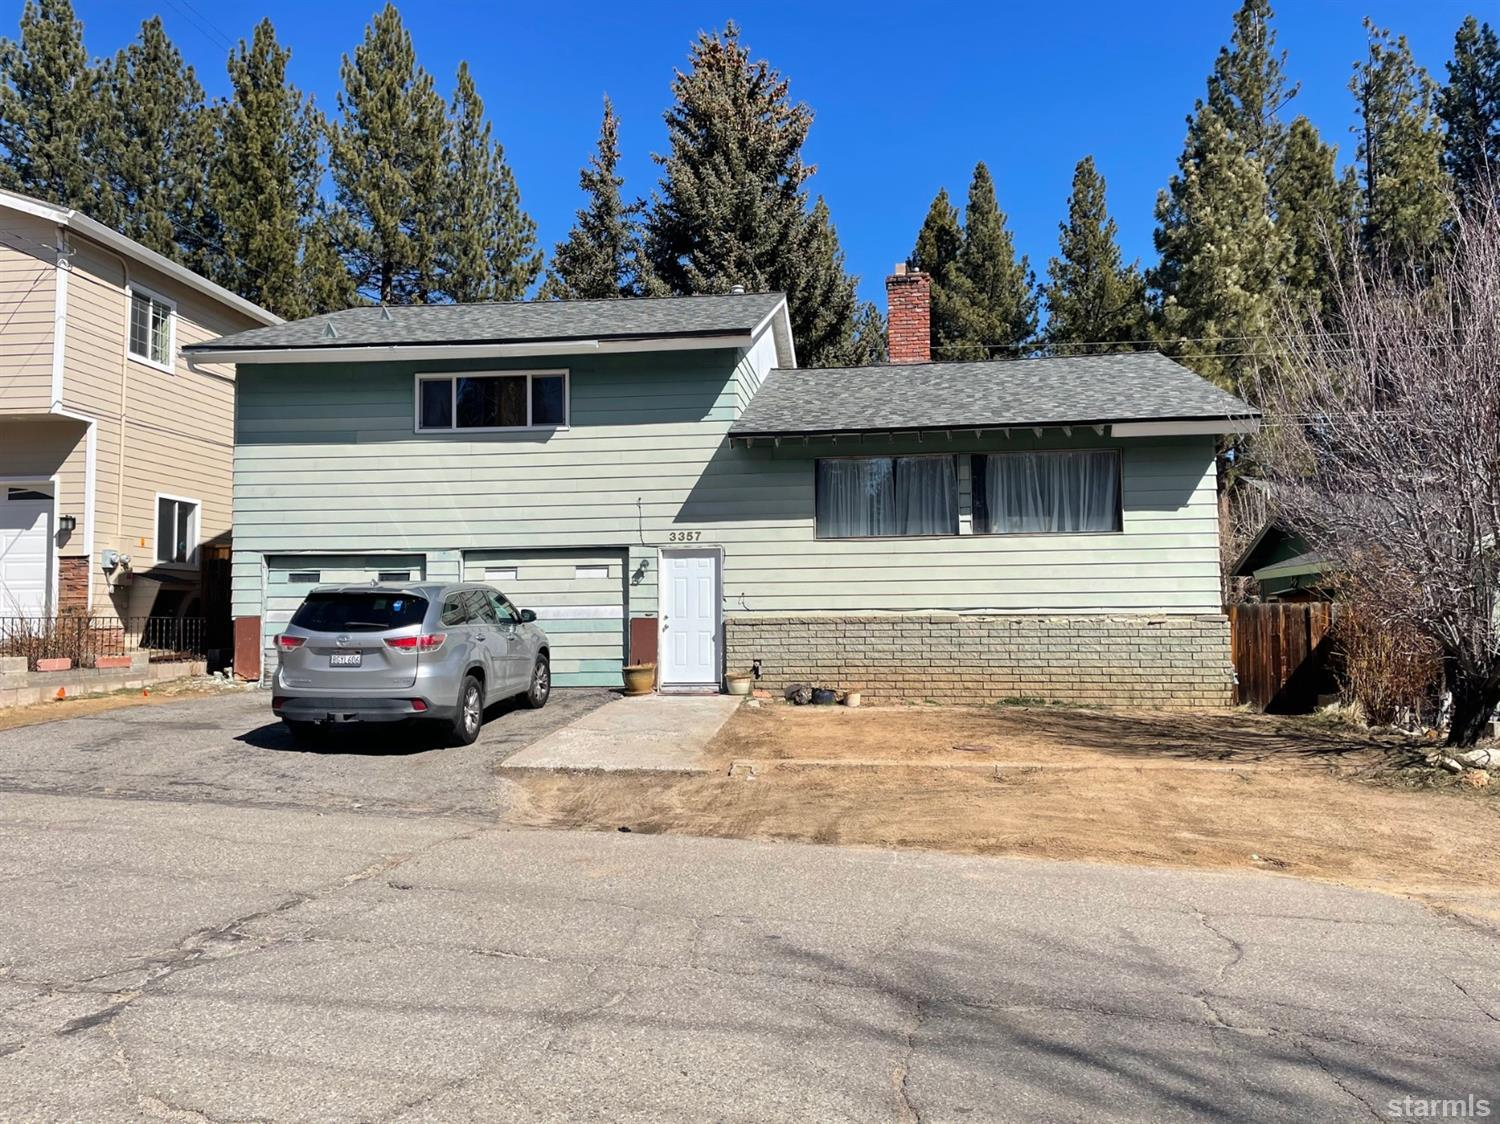 Image for 3357 Heavenly Valley Road, South Lake Tahoe, CA 96150